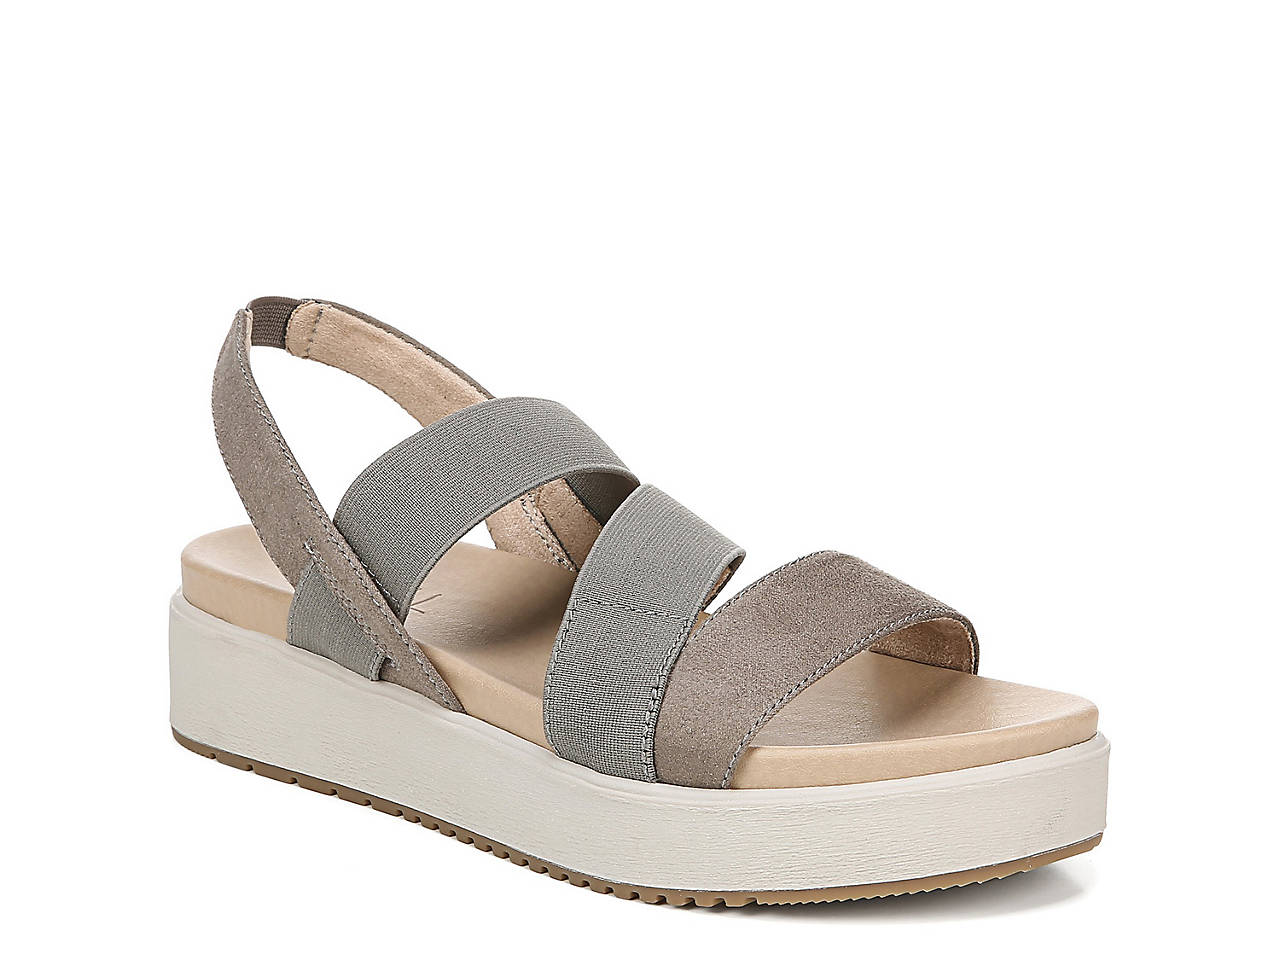 8d573119e508 SOUL Naturalizer Holla Wedge Sandal Women s Shoes